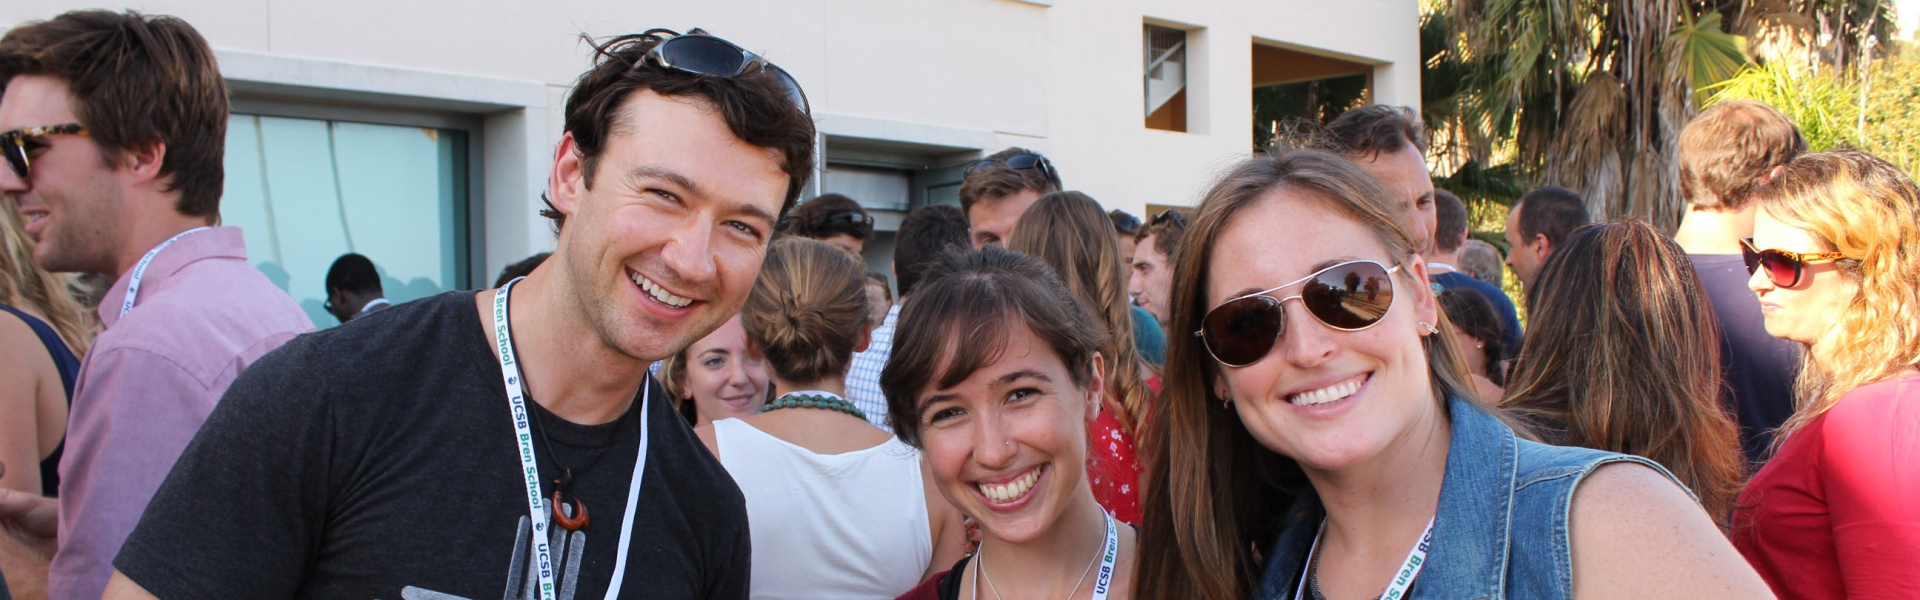 Three smiling people at an outdoor event